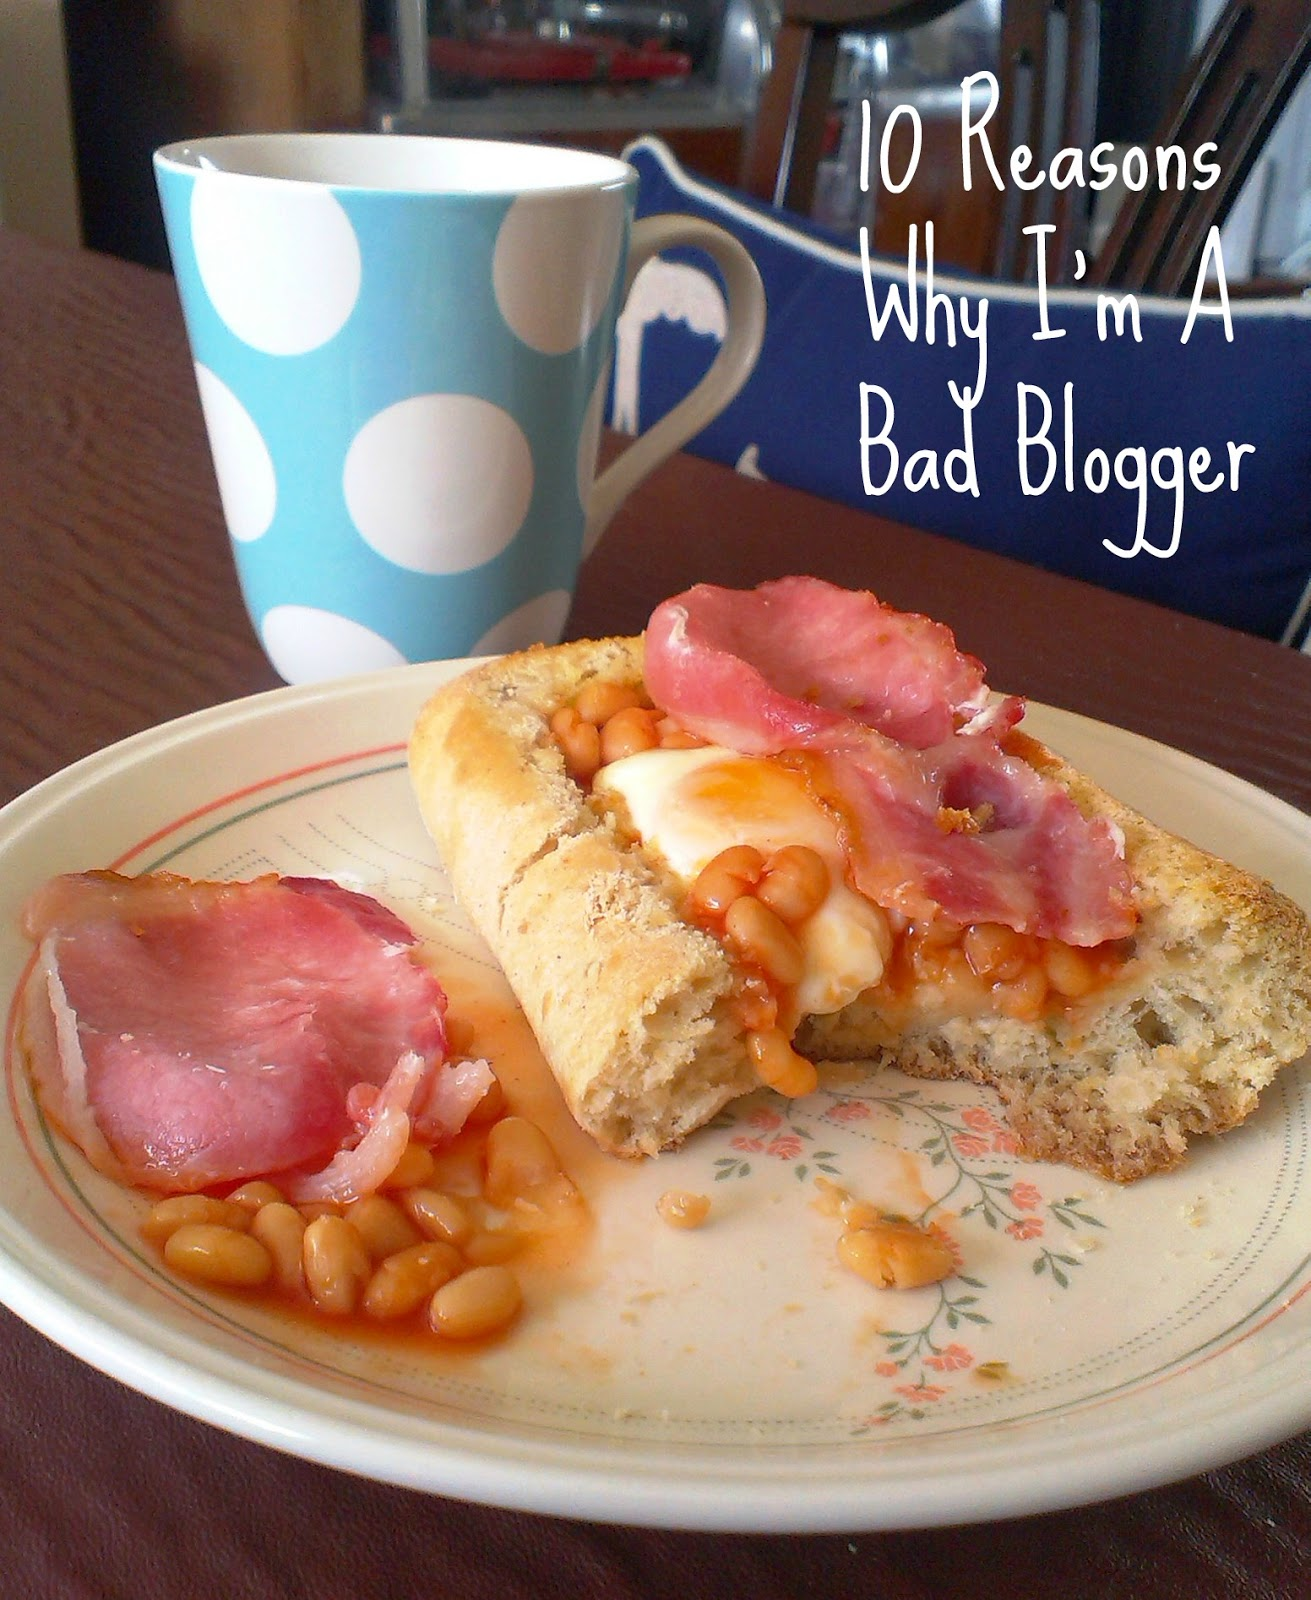 10 Reasons Why I'm A Bad Blogger - Half Eaten Food